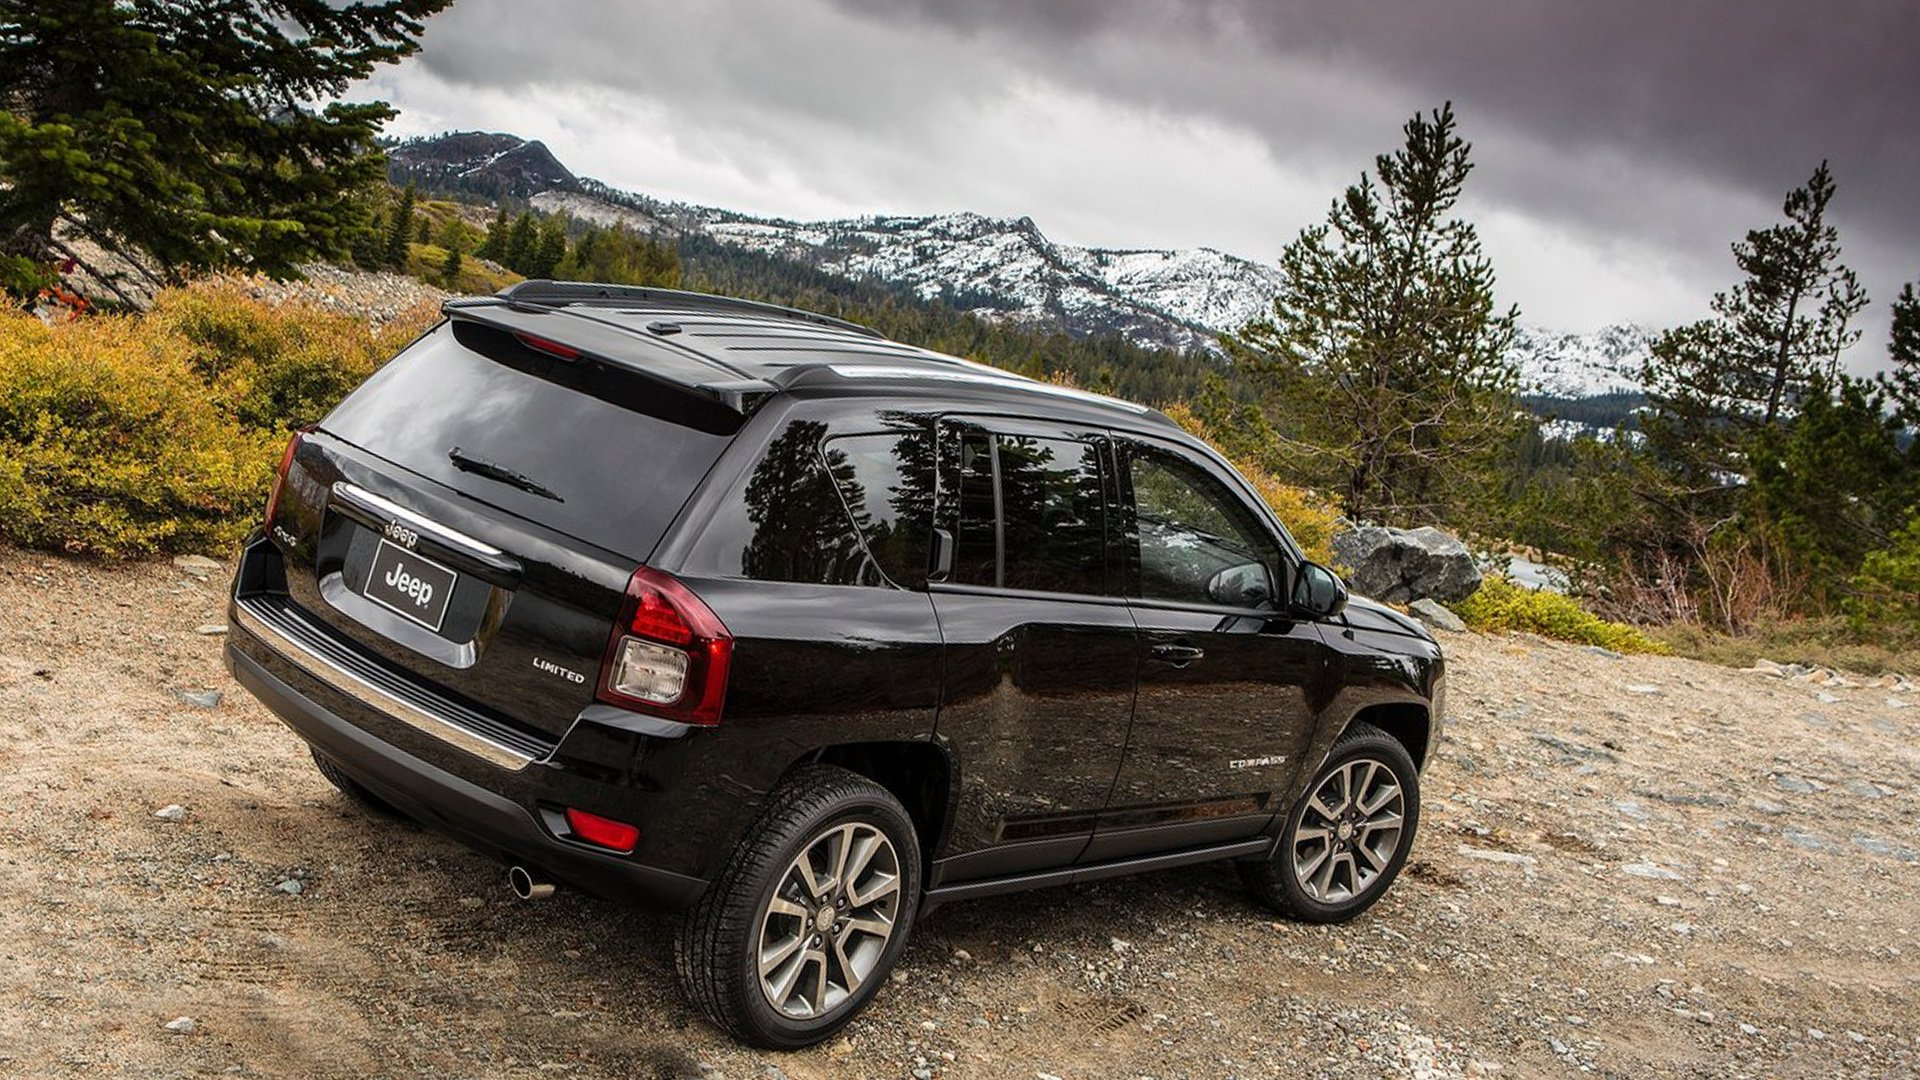 New 2019 Jeep Compass Redesign